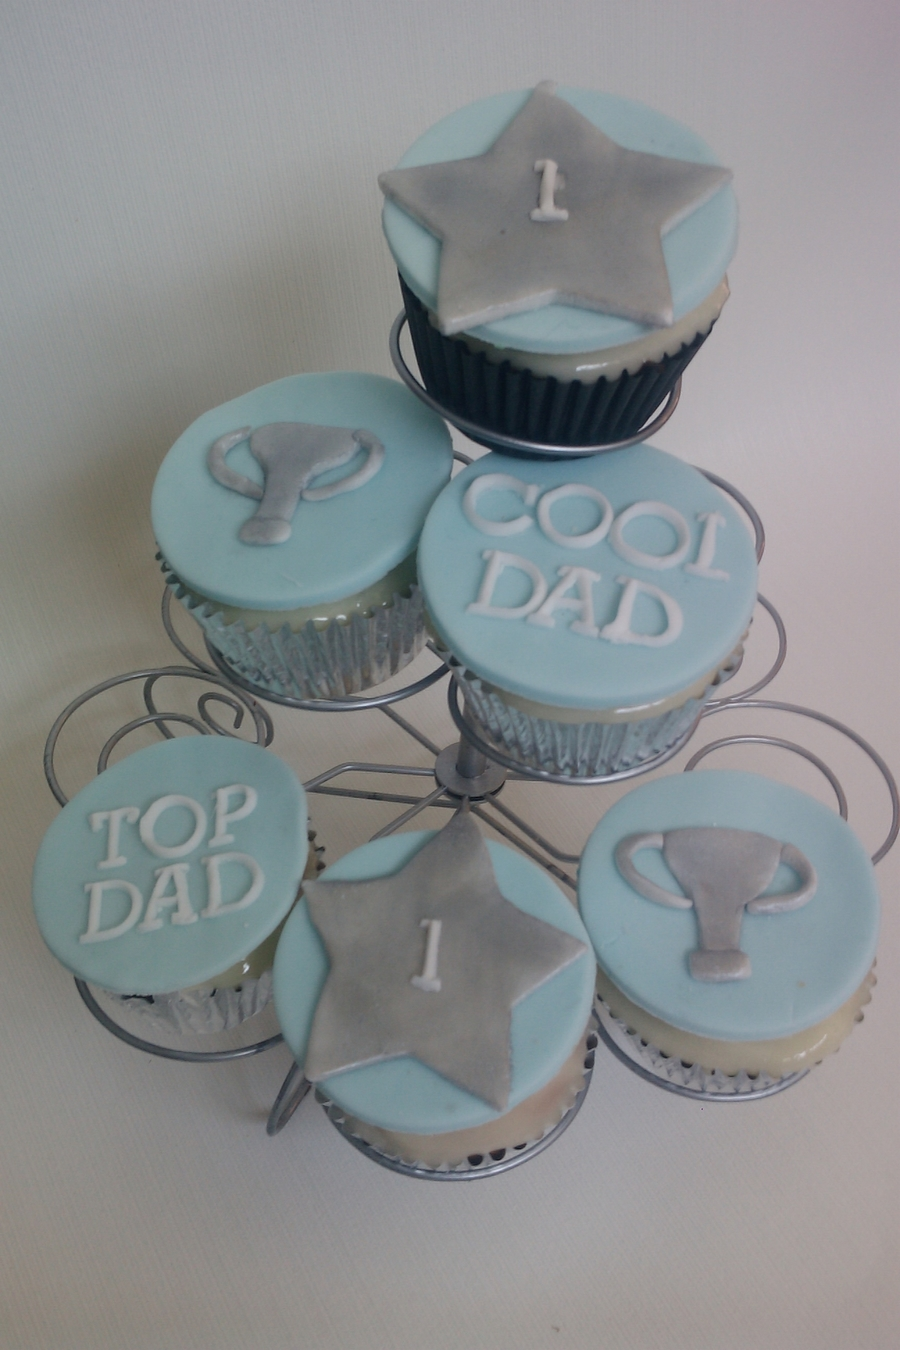 Top Dad on Cake Central